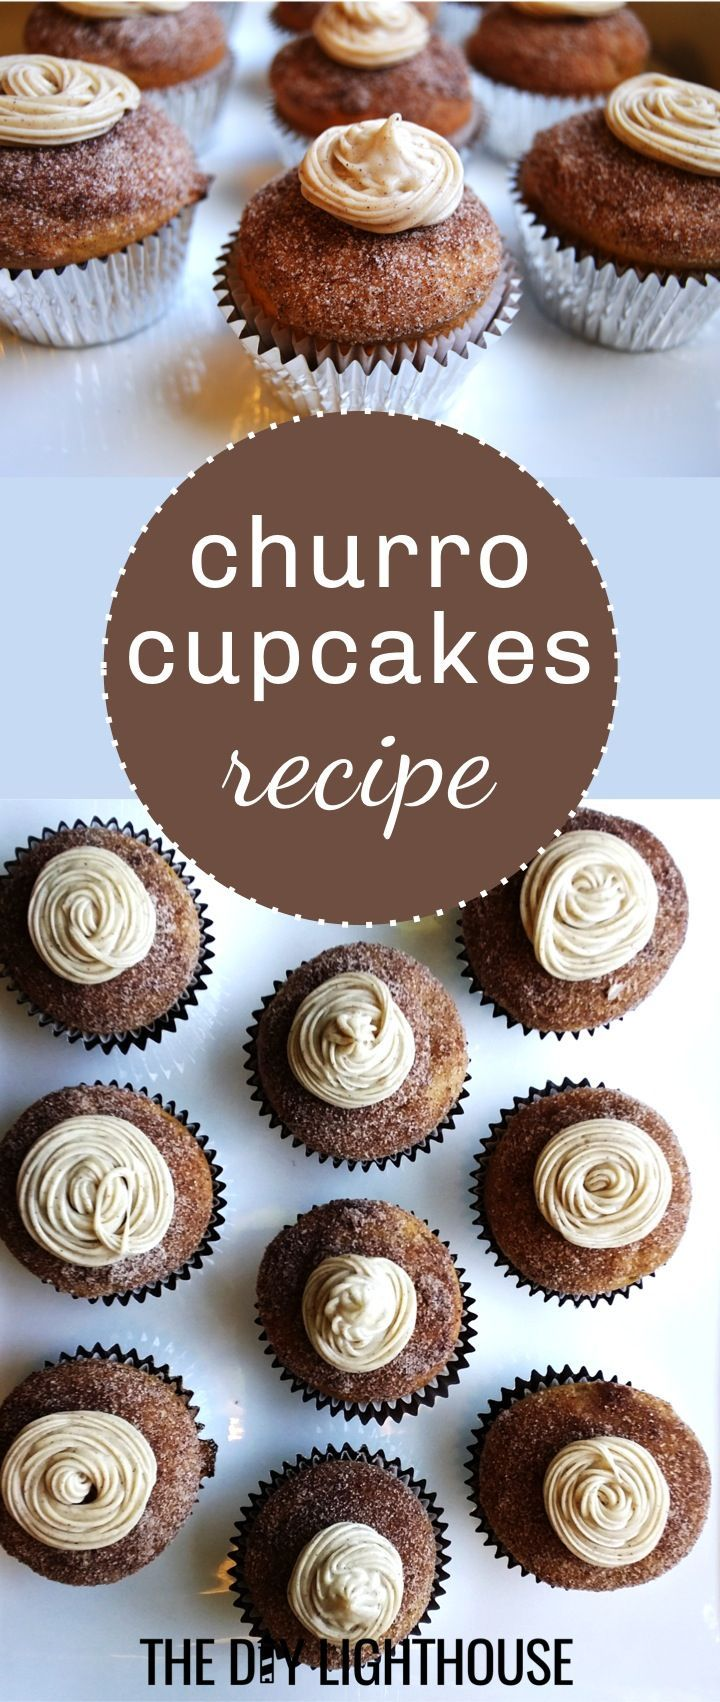 Churro Cupcakes recipe and directions for a fun Cinco de Mayo dessert idea. Party food inspiration or treat for the kids. Easy and quick DIY cupcake idea you'll love!